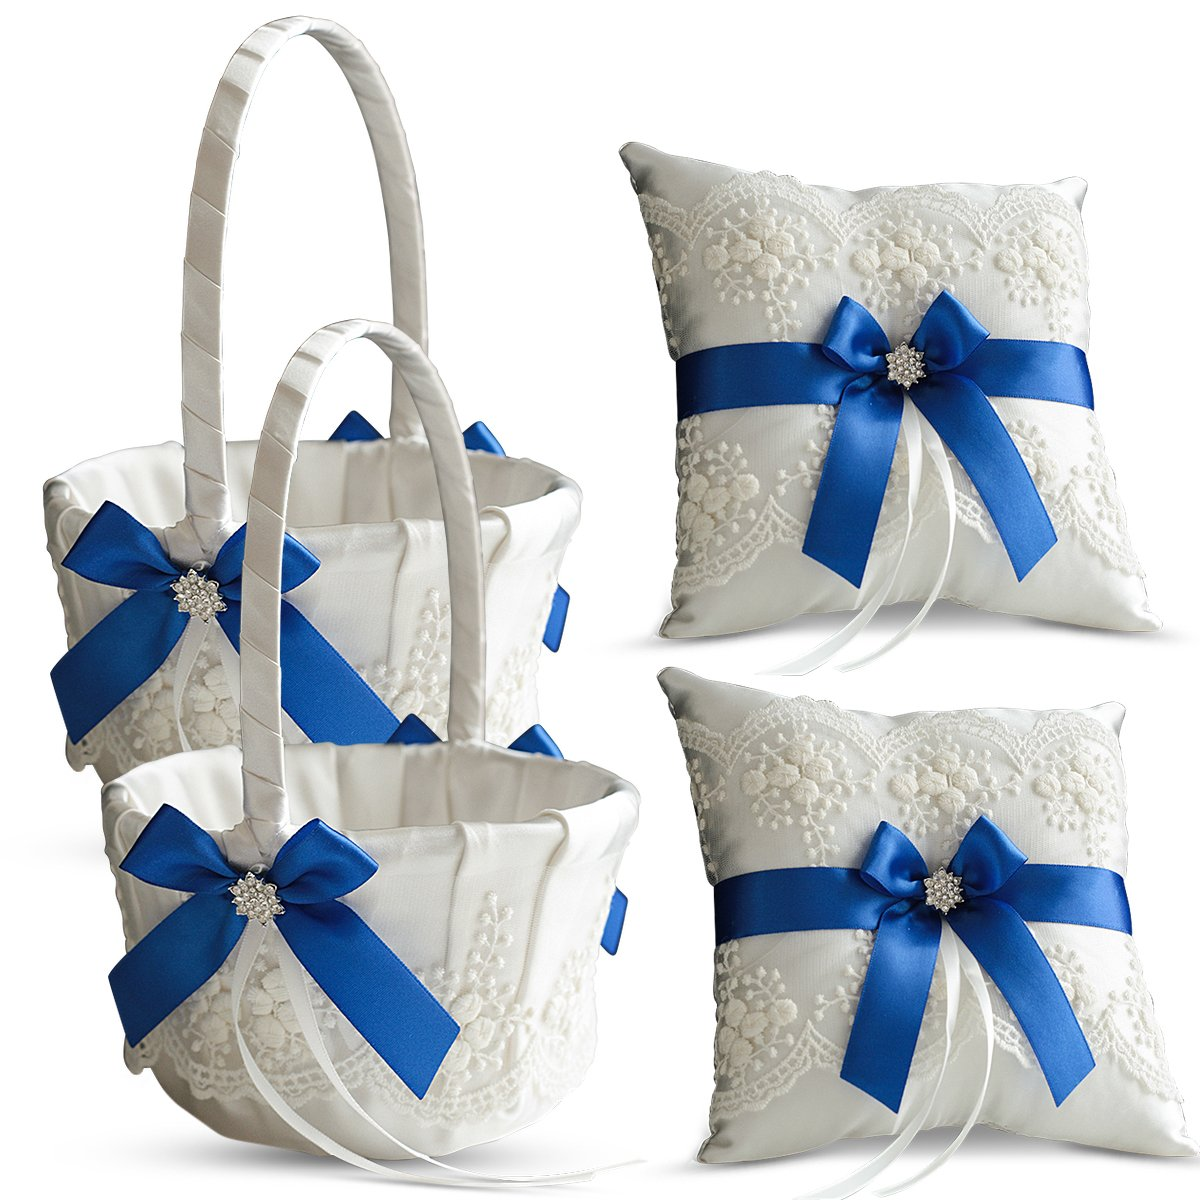 Roman Store Ivory Ring Bearer Pillow and Basket Set | Lace Collection | Flower Girl & Welcome Basket for Guest | Handmade Wedding Baskets & Pillows (Royal Blue) by Roman Store (Image #1)